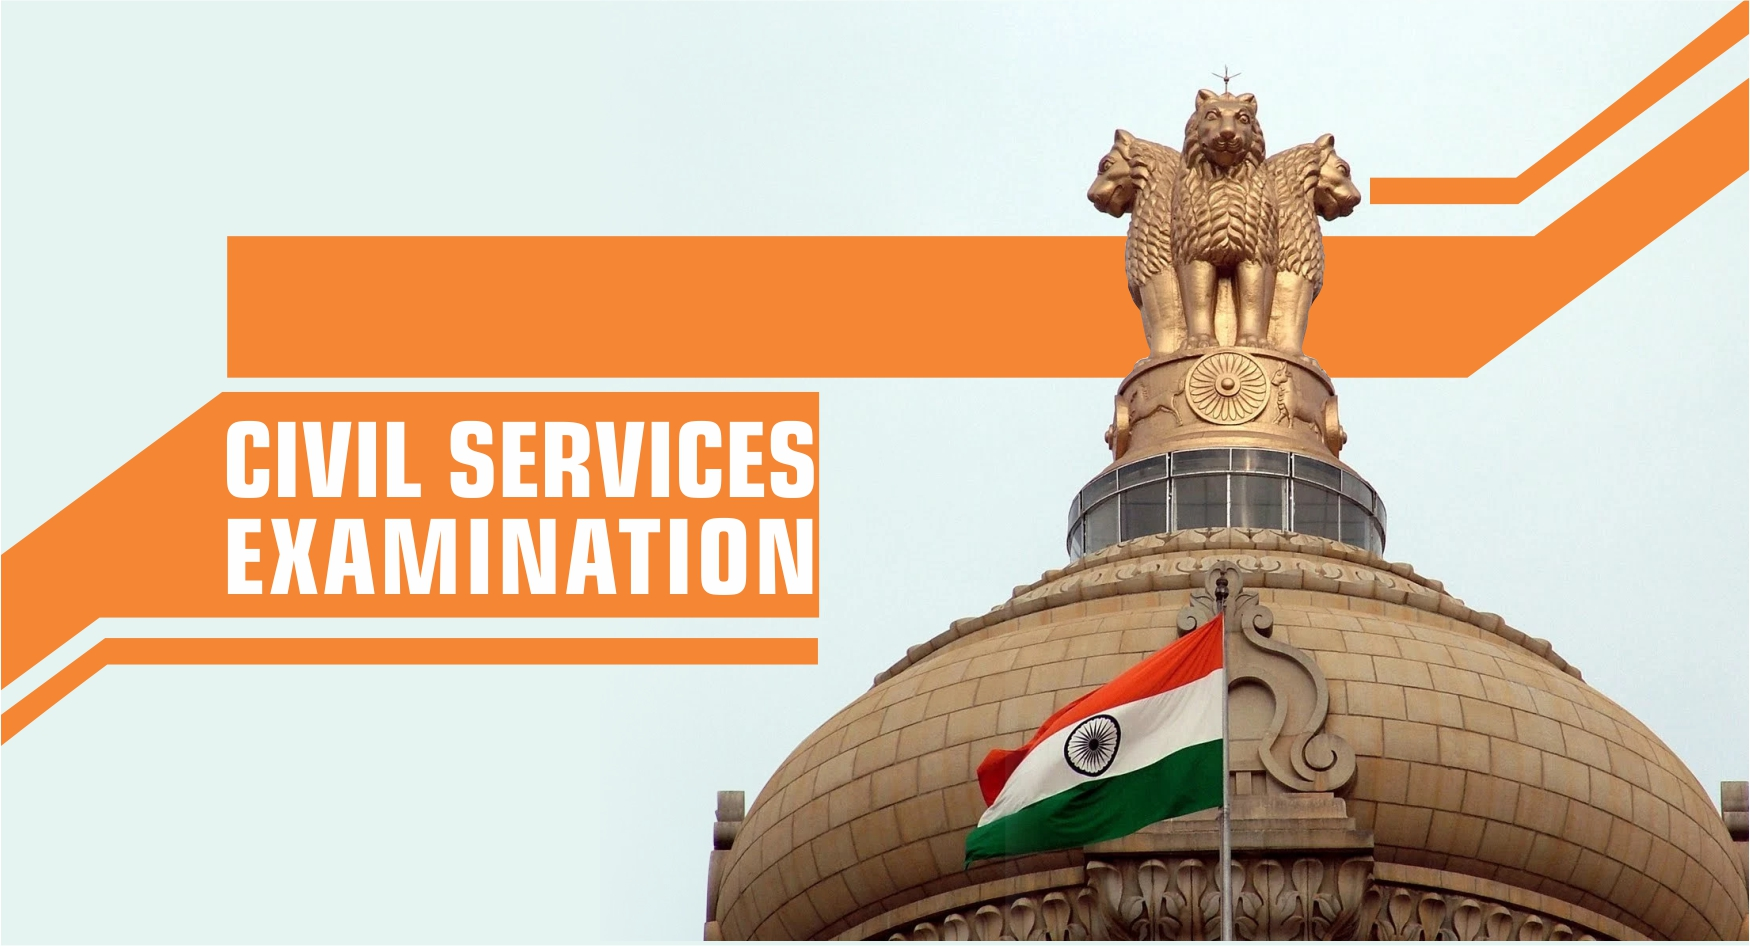 Exams Under UPSC - Civil Services Examination